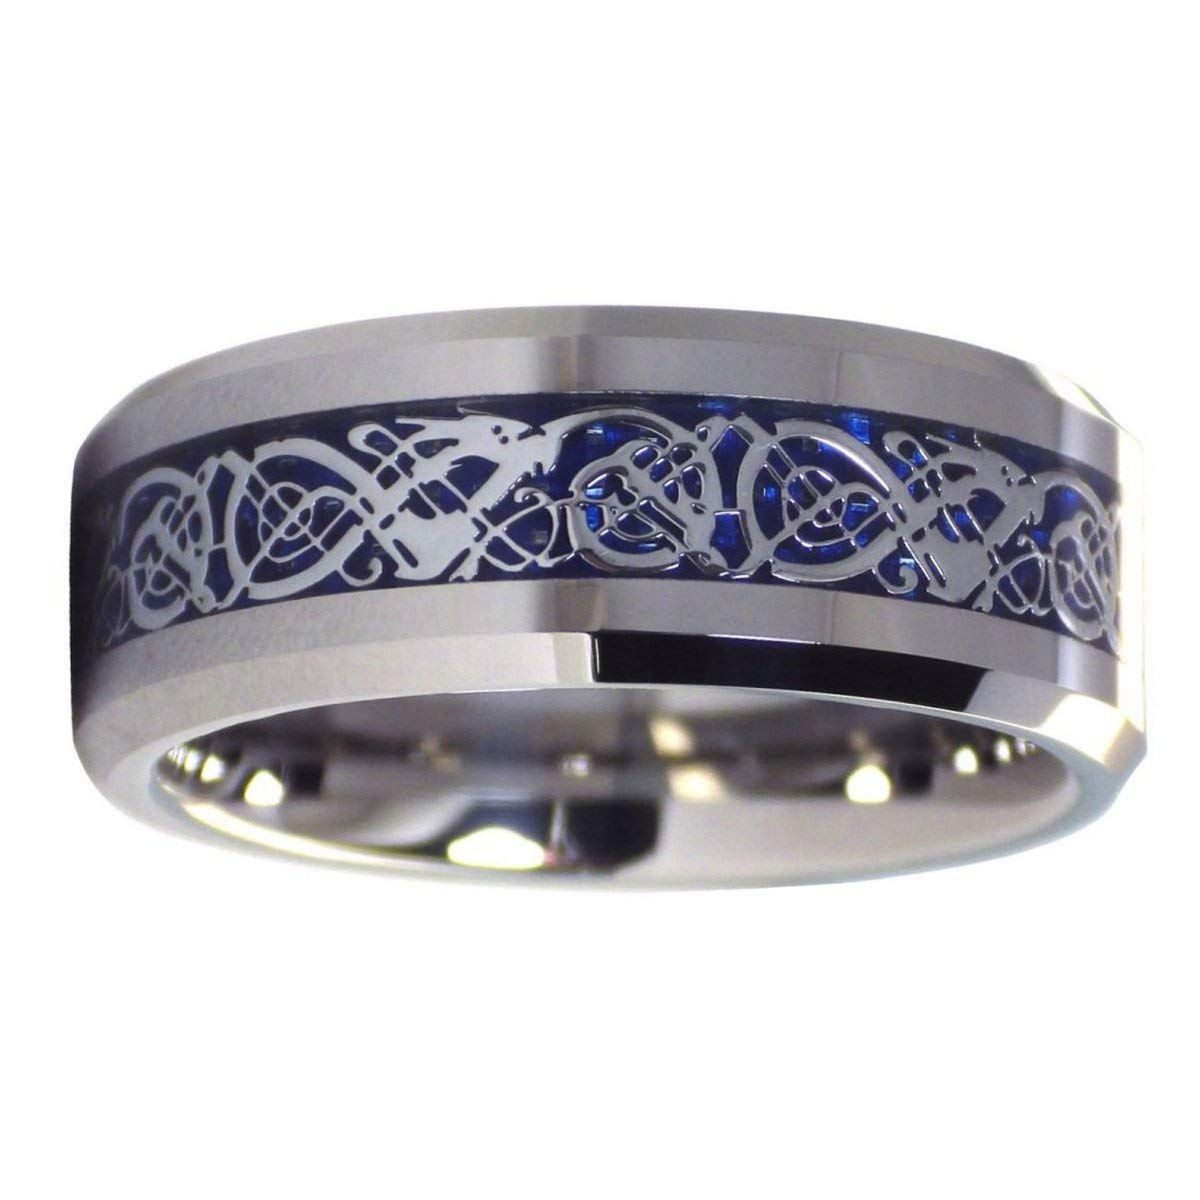 Fantasy Forge Jewelry Tungsten Celtic Ice Dragon Ring Anniversary Wedding Band Blue Carbon Fiber 8mm Sizes 6-17